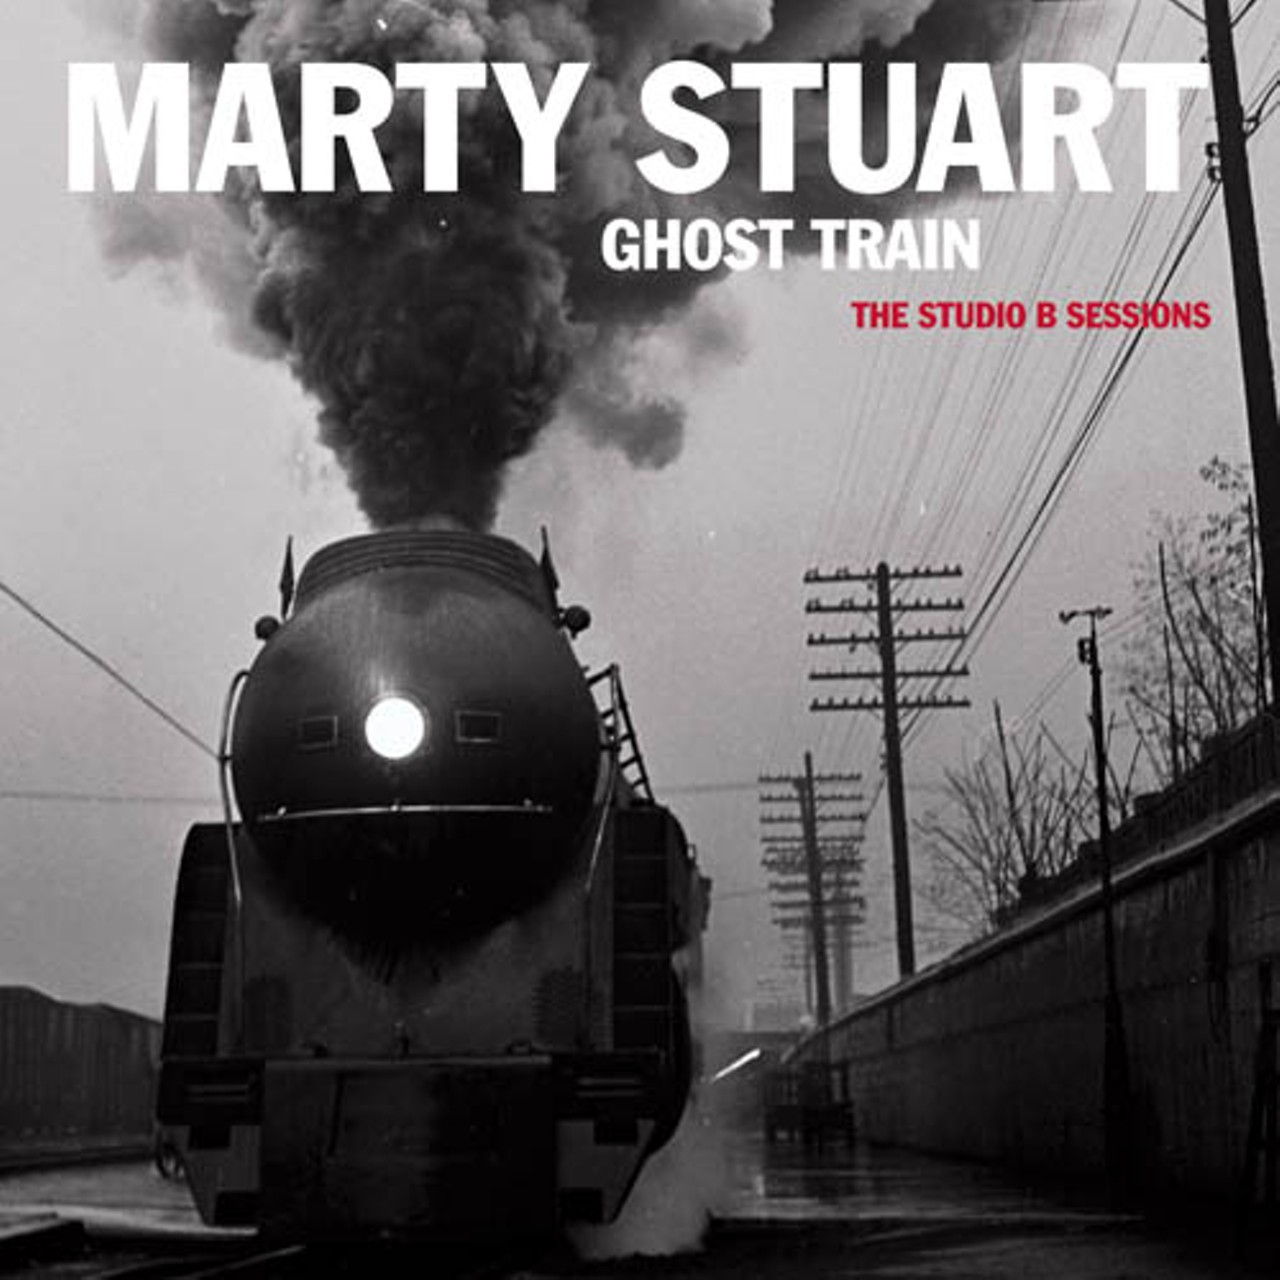 CD REVIEW: Marty Stuart's Ghost Train: The Studio B Sessions | Hit